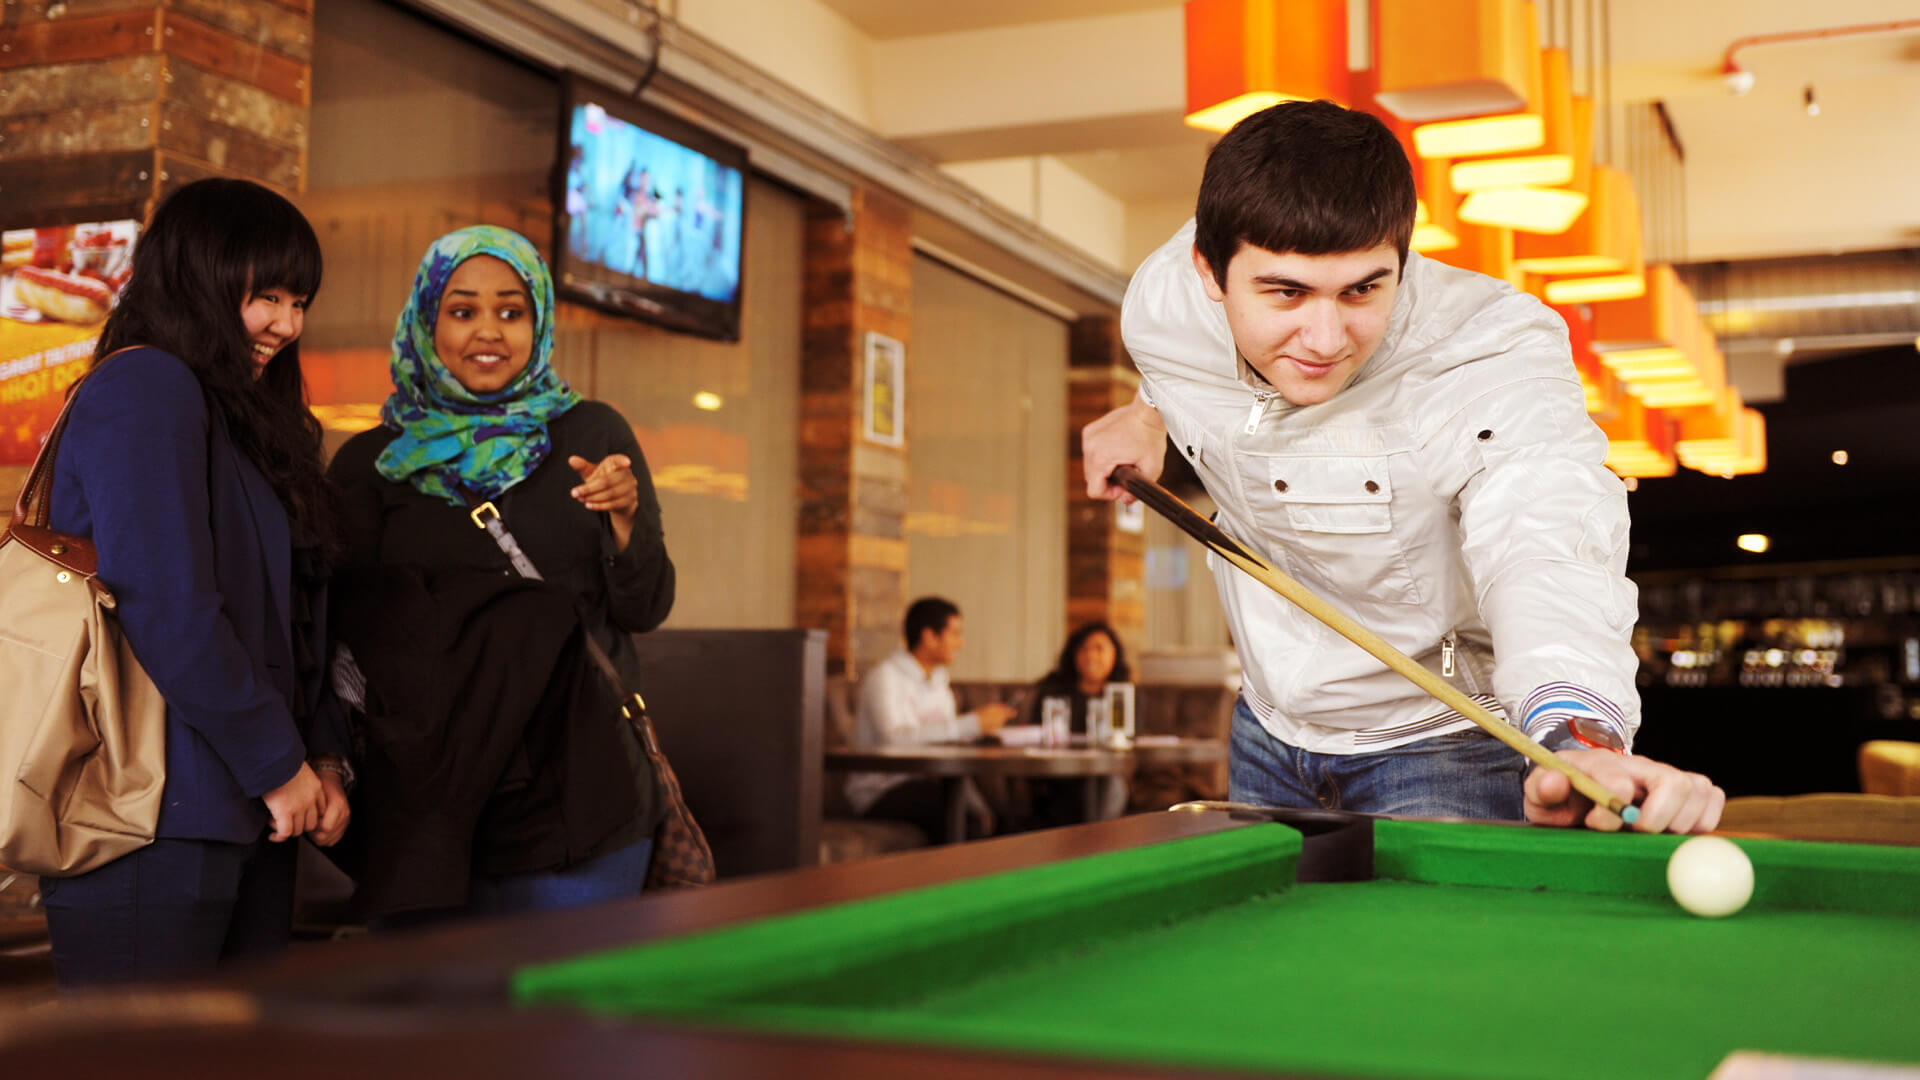 Students playing pool at the students' union at the University of Manchester